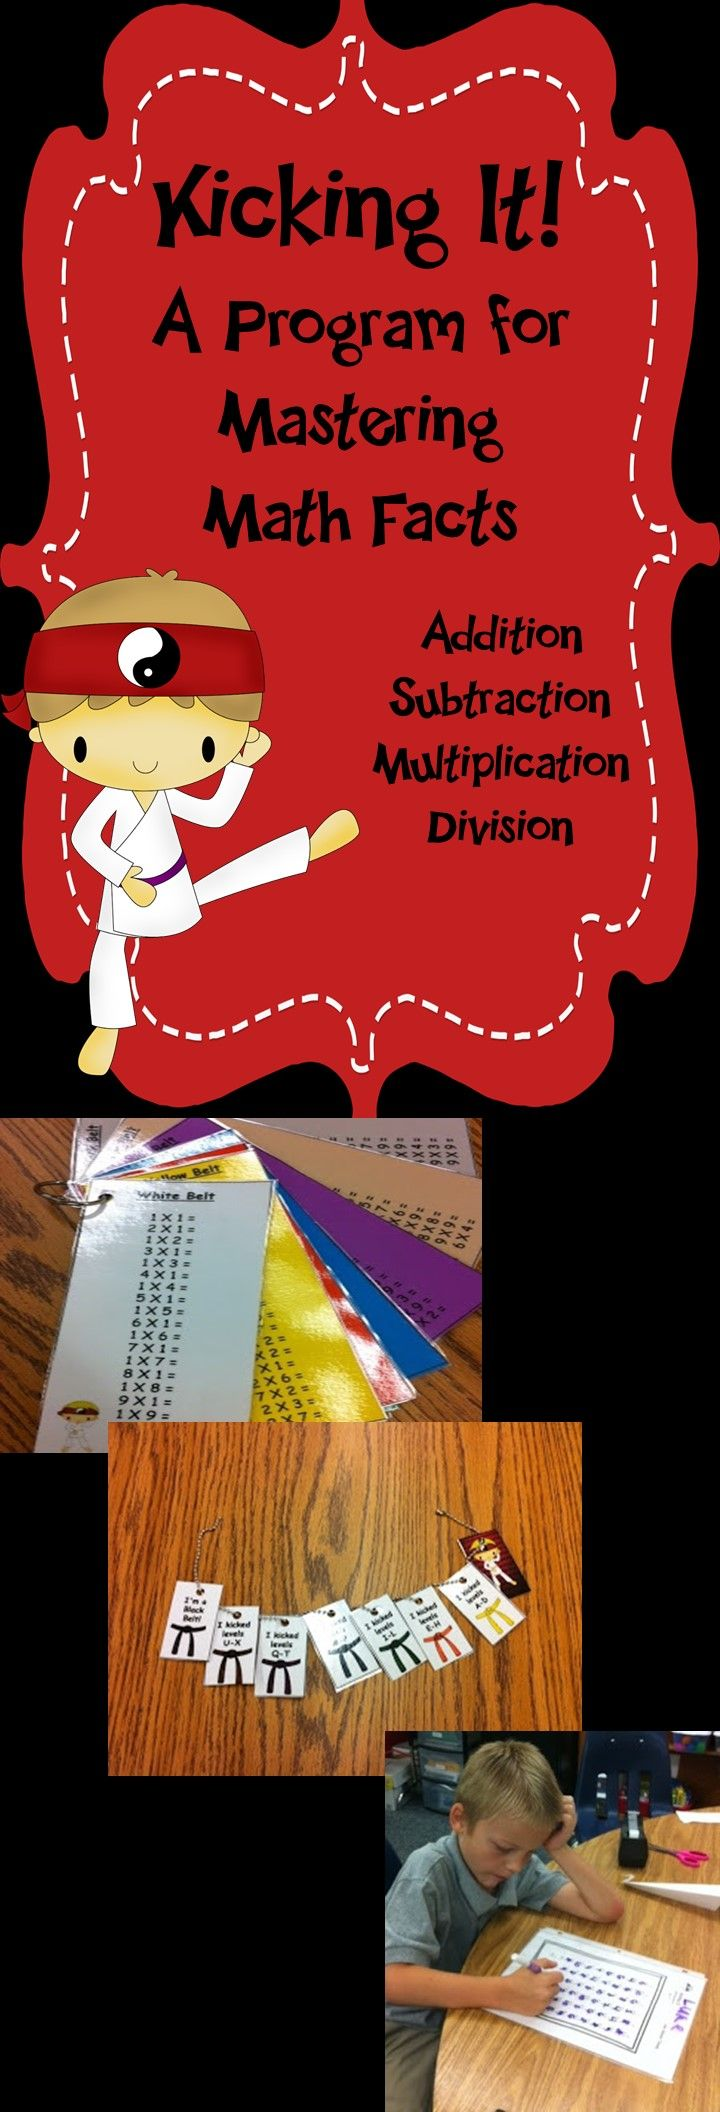 Want to get your students excited about learning their multiplication facts? Try this fun karate/martial arts incentive program with your class!  It only takes about 5-10 minutes a day to incorporate in your math block and your students will be begging to take timed tests each day to pass to the next level and earn their black belt in multiplication!